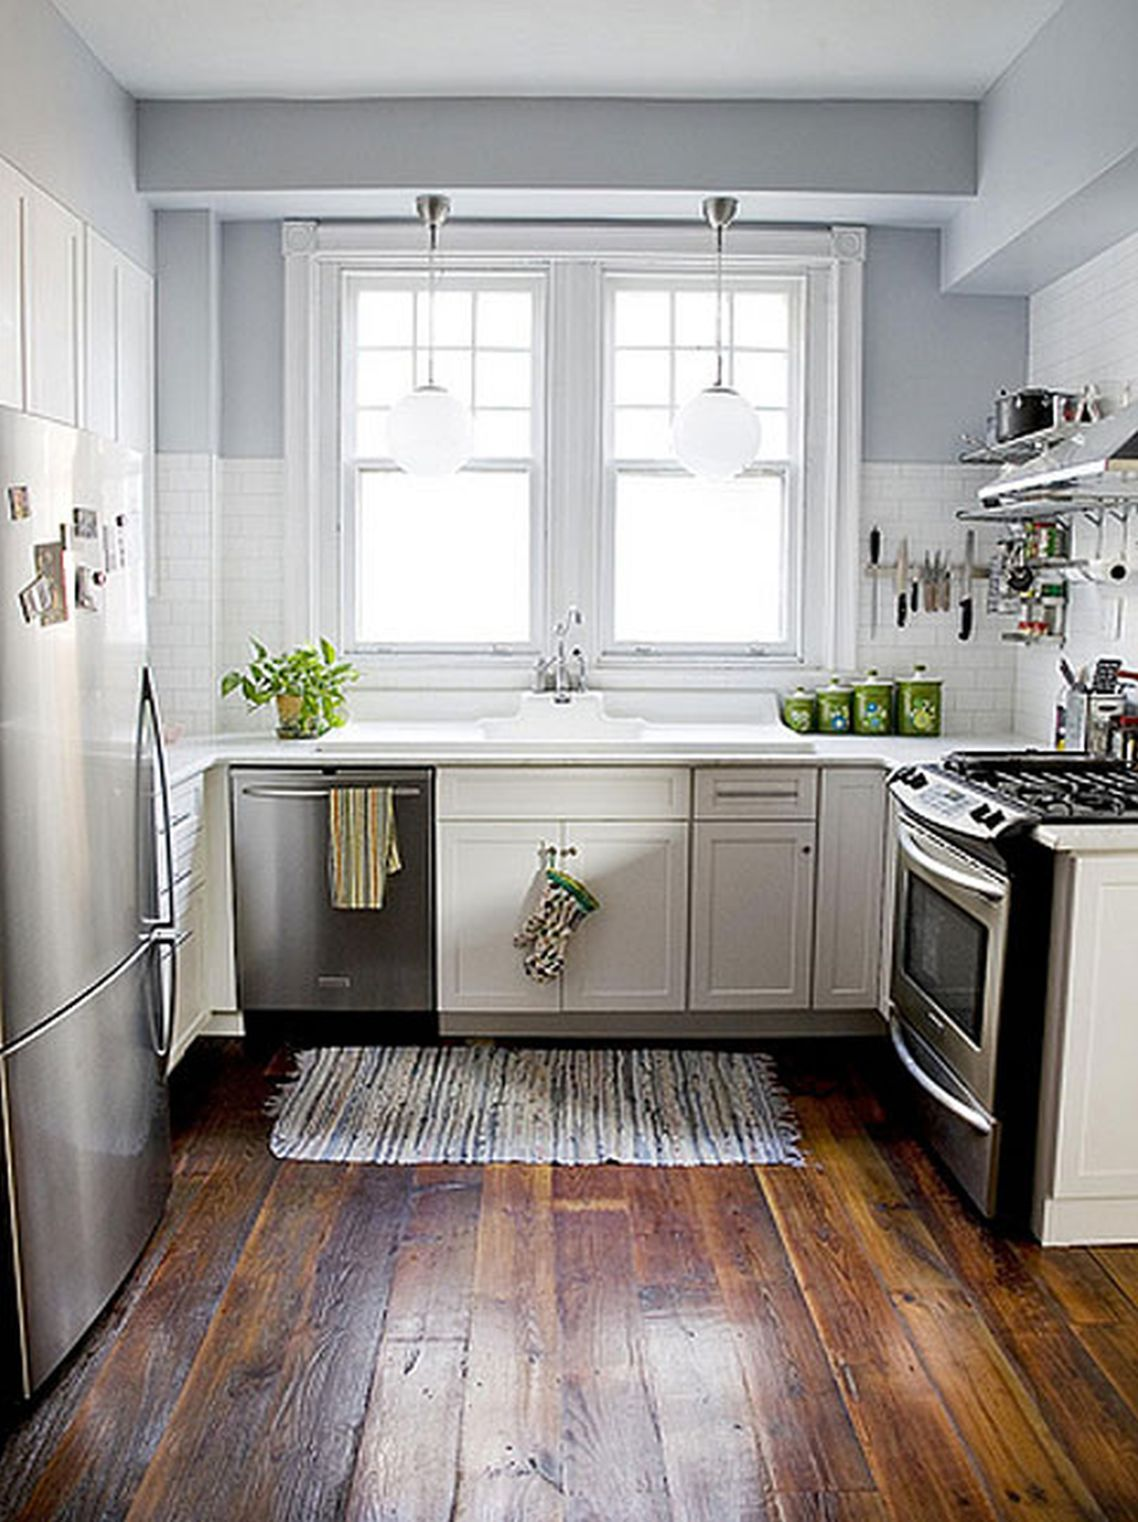 Picture of Small U Shaped Kitchen with Dark Wooden Floor | Taylor St ...